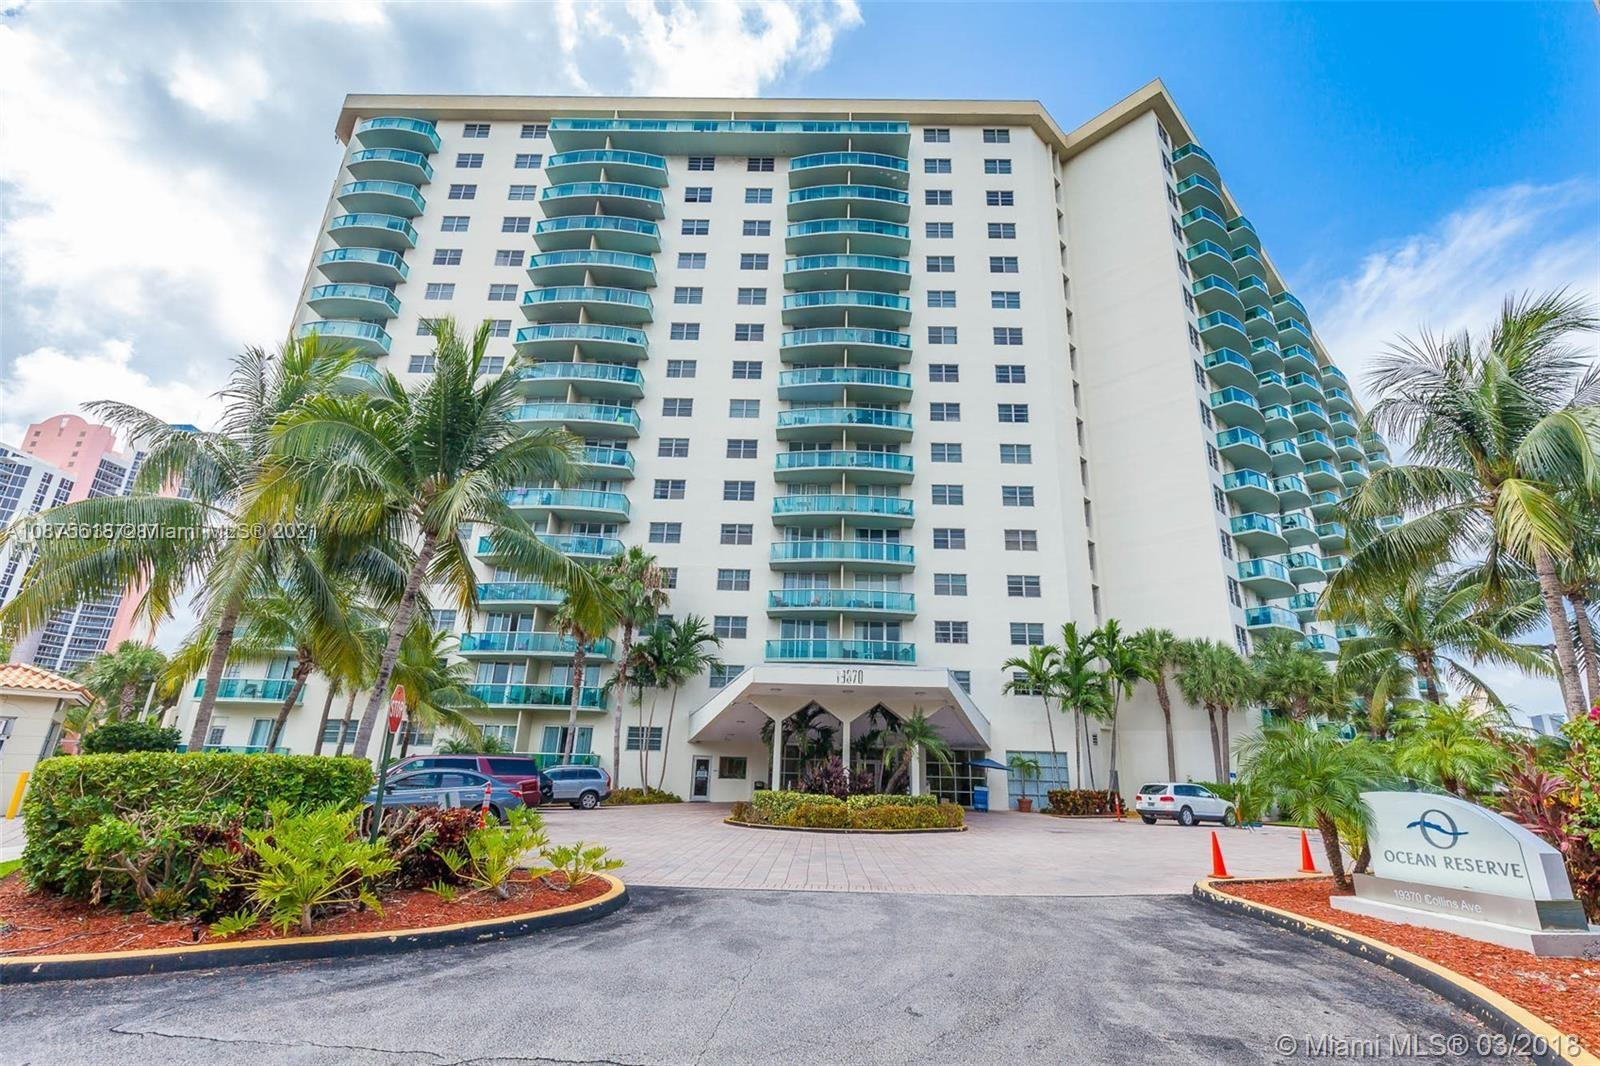 Ocean Reserve #802 - 19370 Collins Ave #802, Sunny Isles Beach, FL 33160